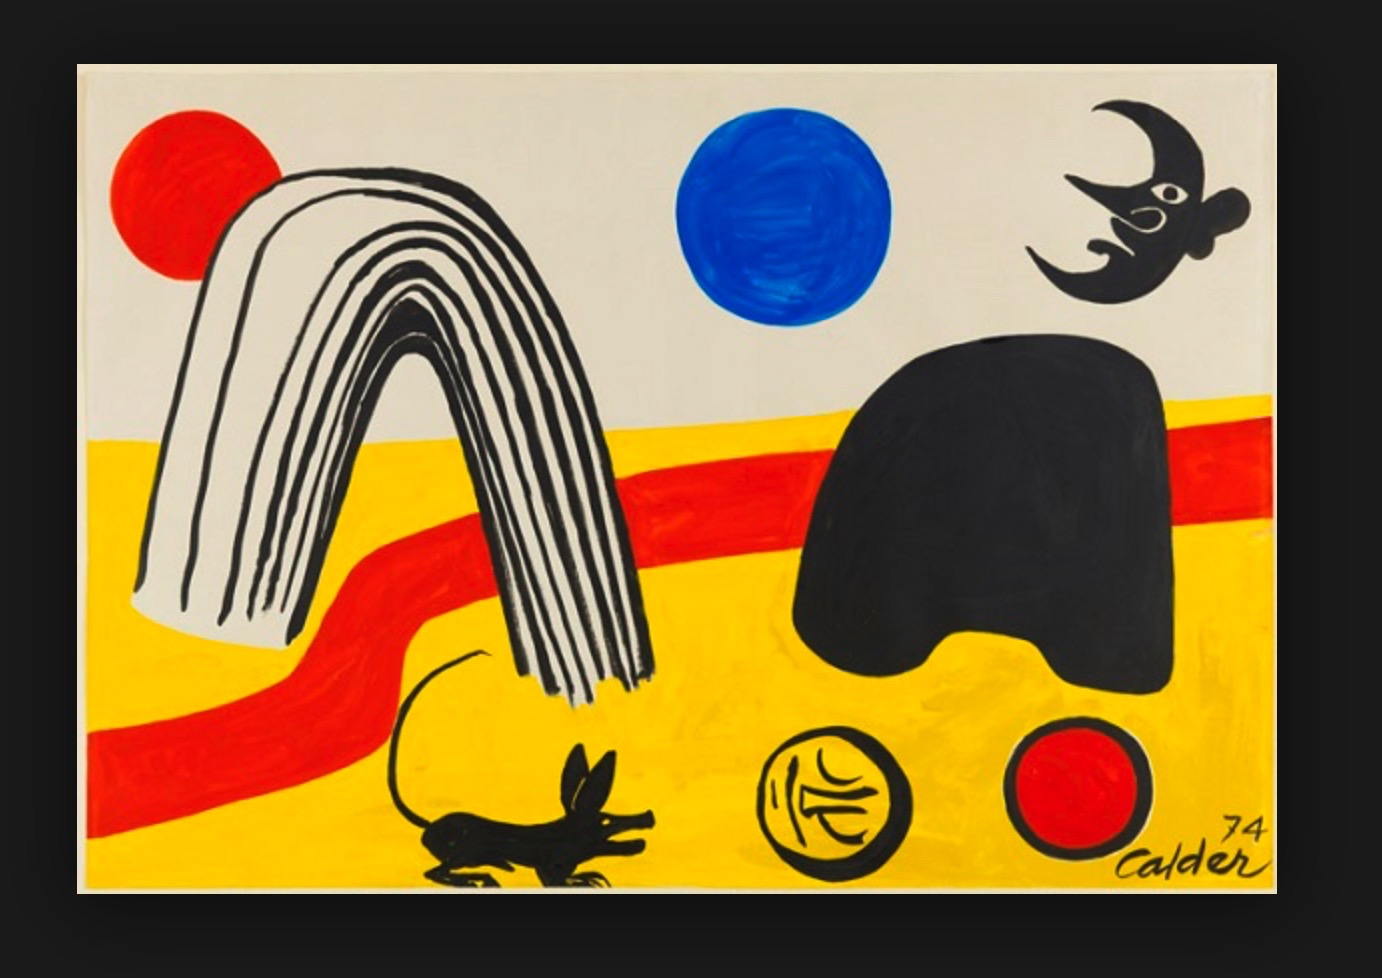 ALEXANDER CALDER BMW ART CAReric kim screenshot_875